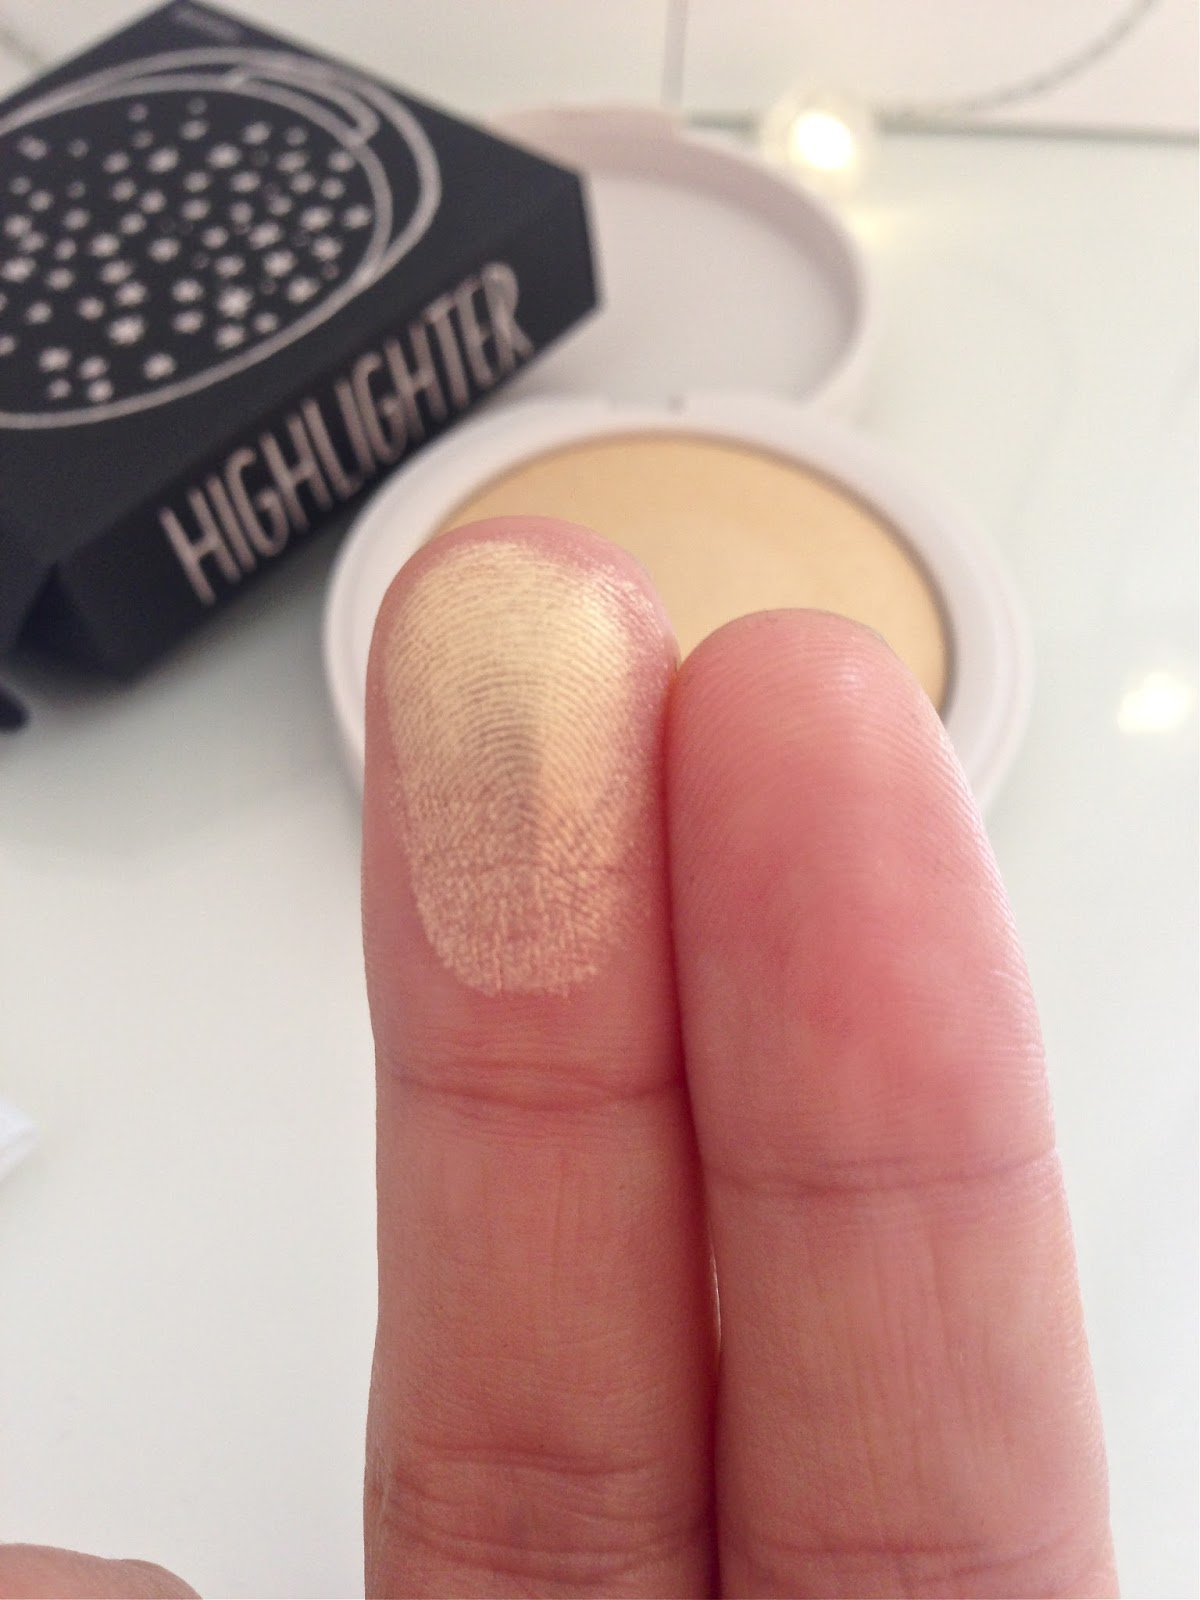 Topshop Highlighter in Sunbeam